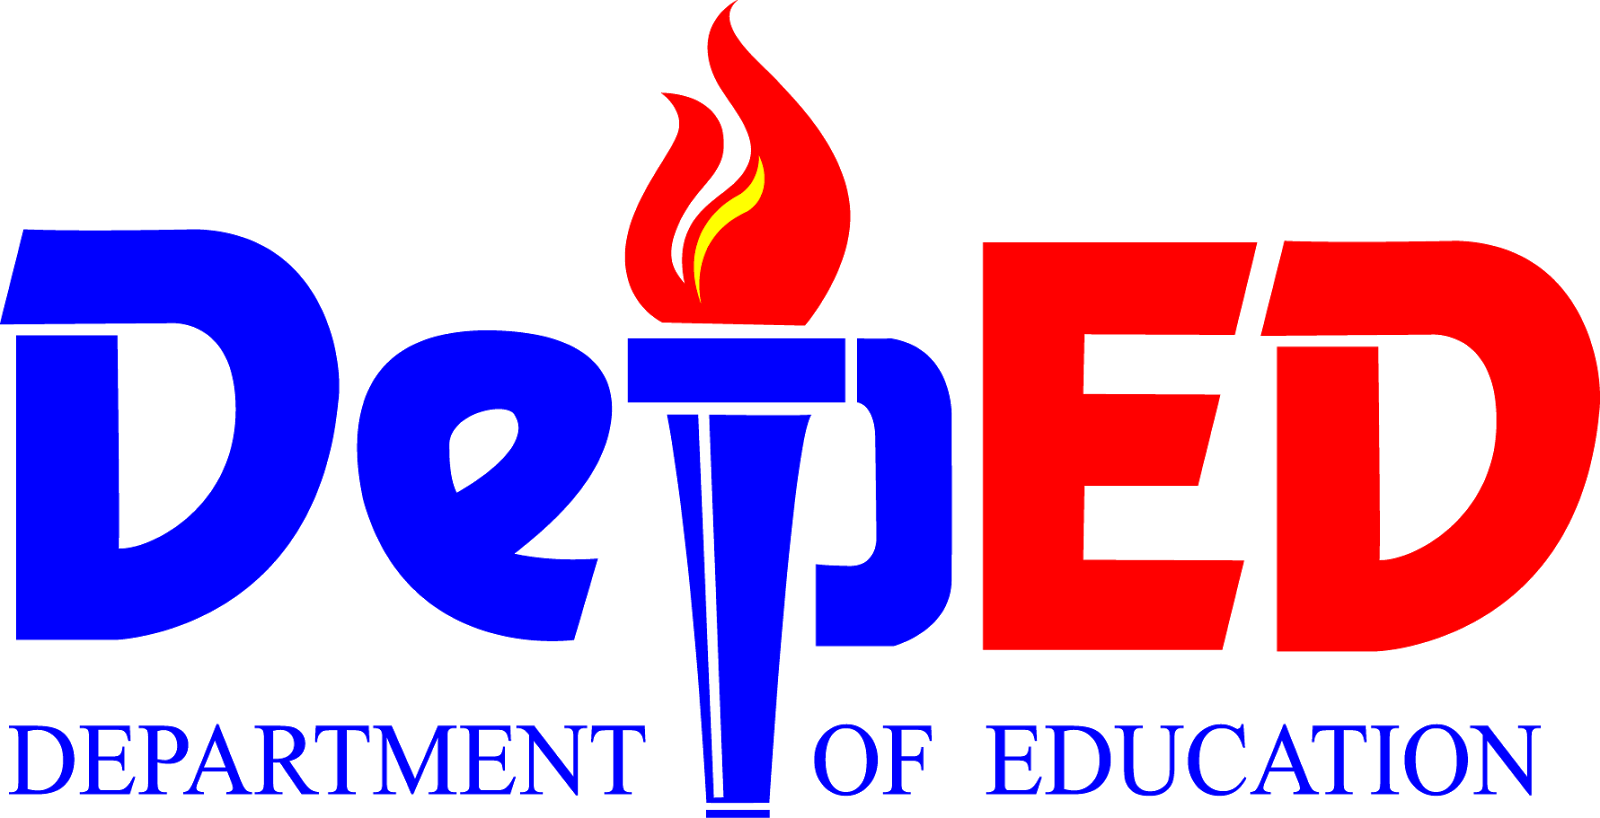 Deped Tops 2016 National Budget The Summit Express